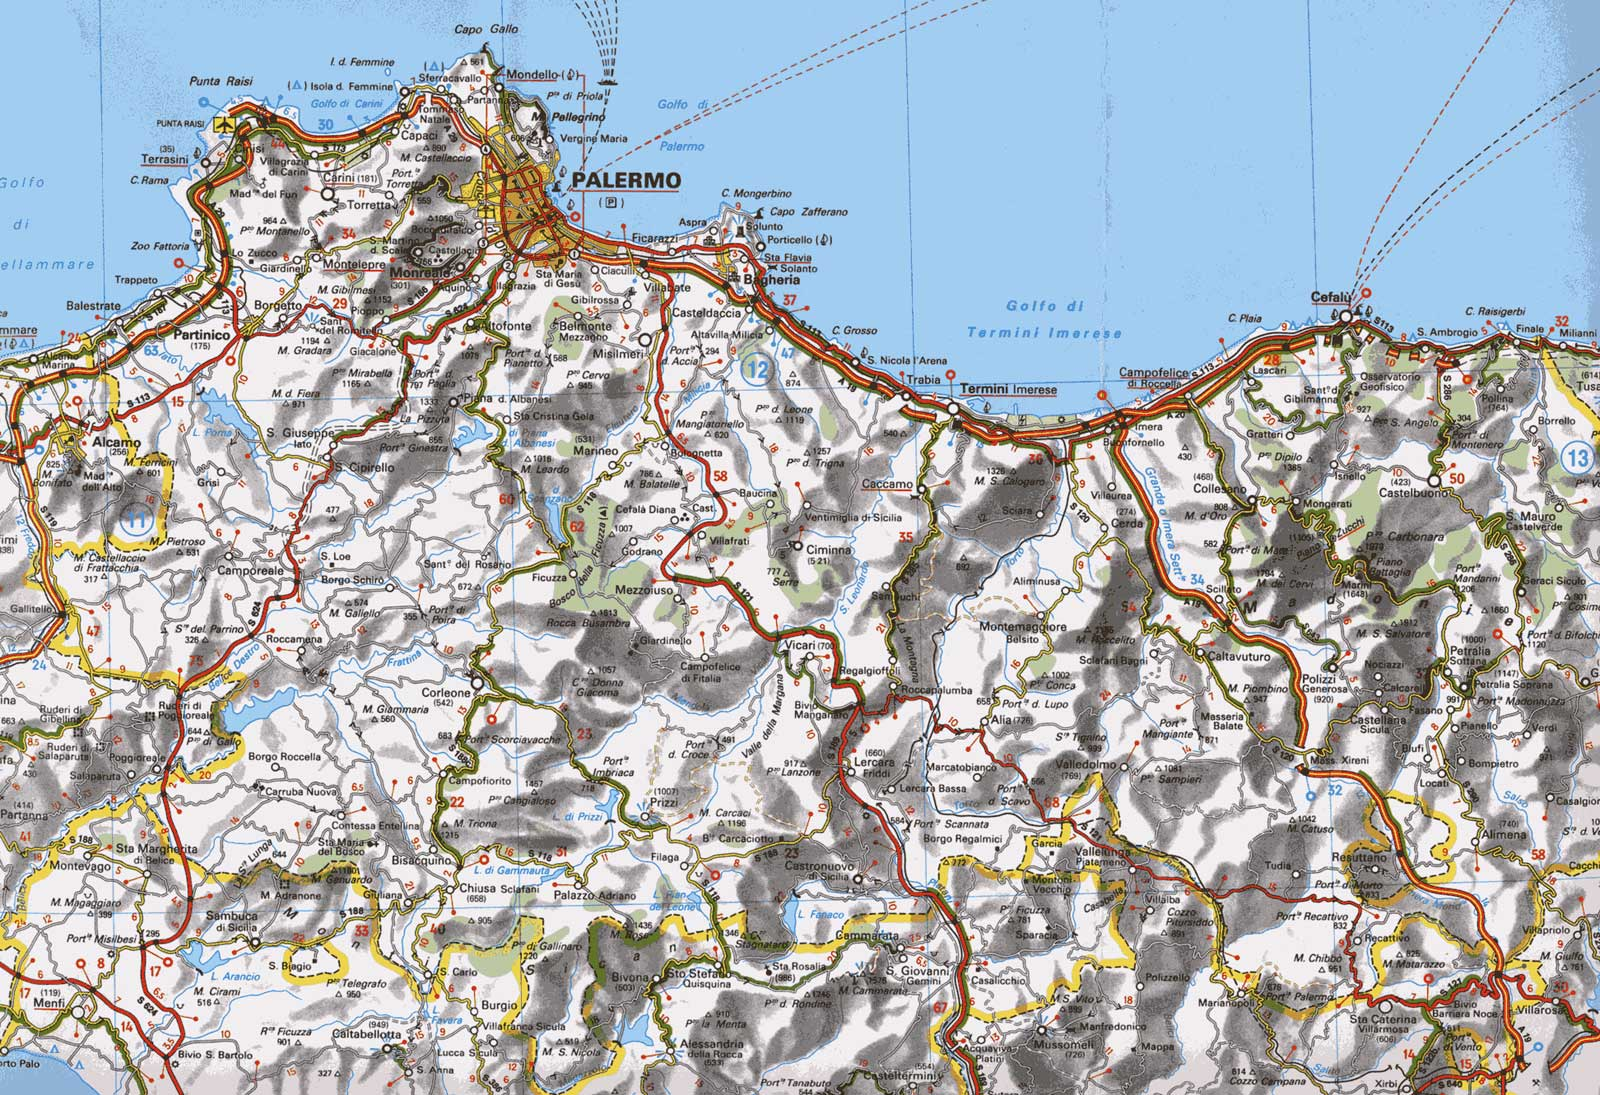 Detailed City Map of Palermo • Mapsof.net